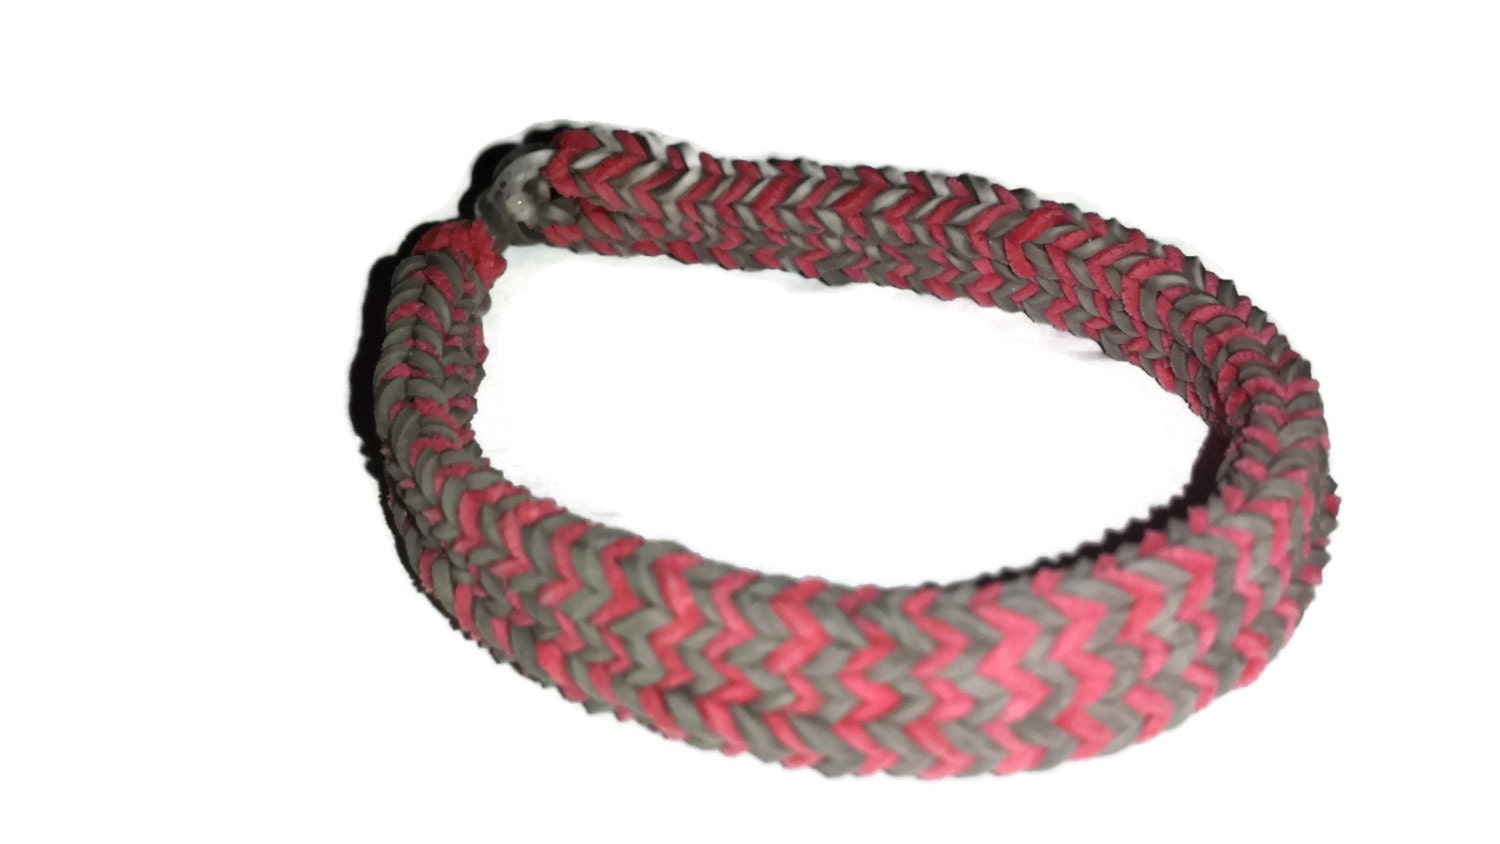 Rainbow Loom Red and Gray FLAT Hexafish Bracelet. Any pattern